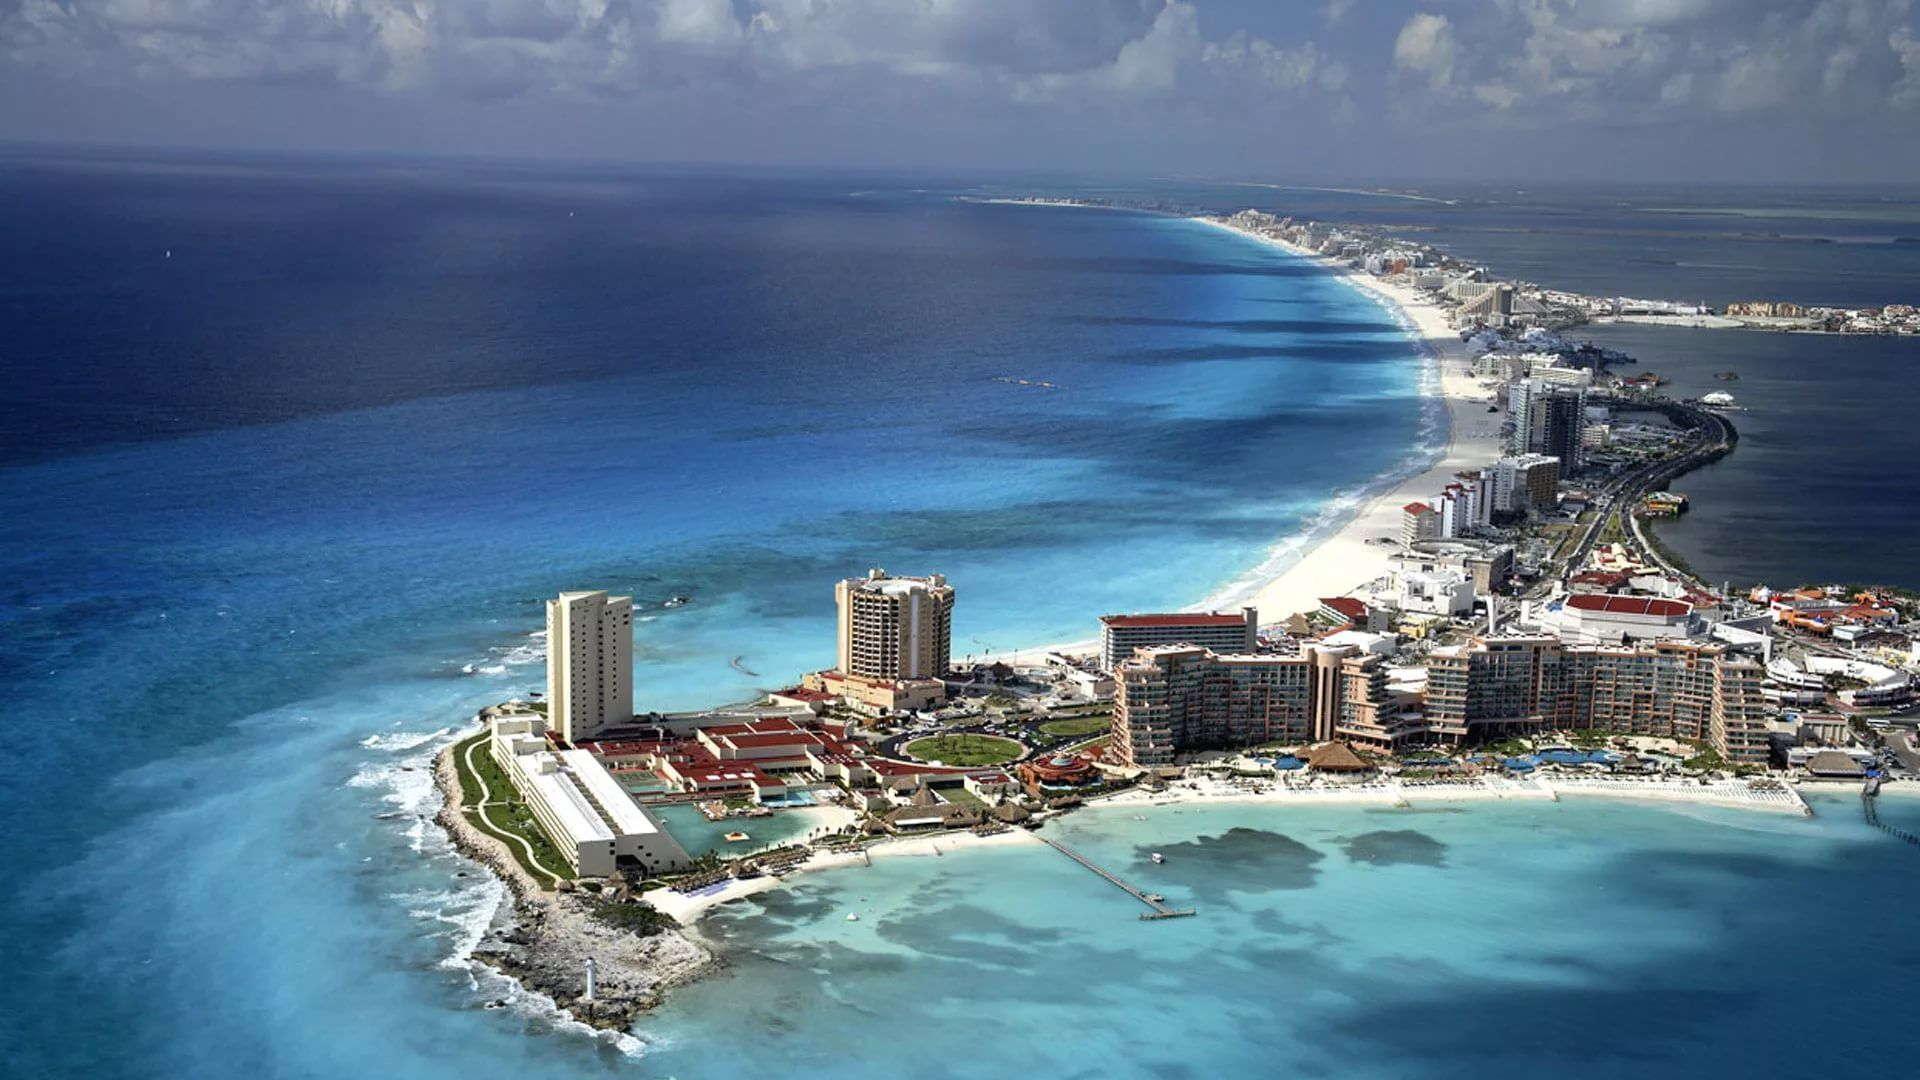 Cancun Mexico hd wallpaper for laptop